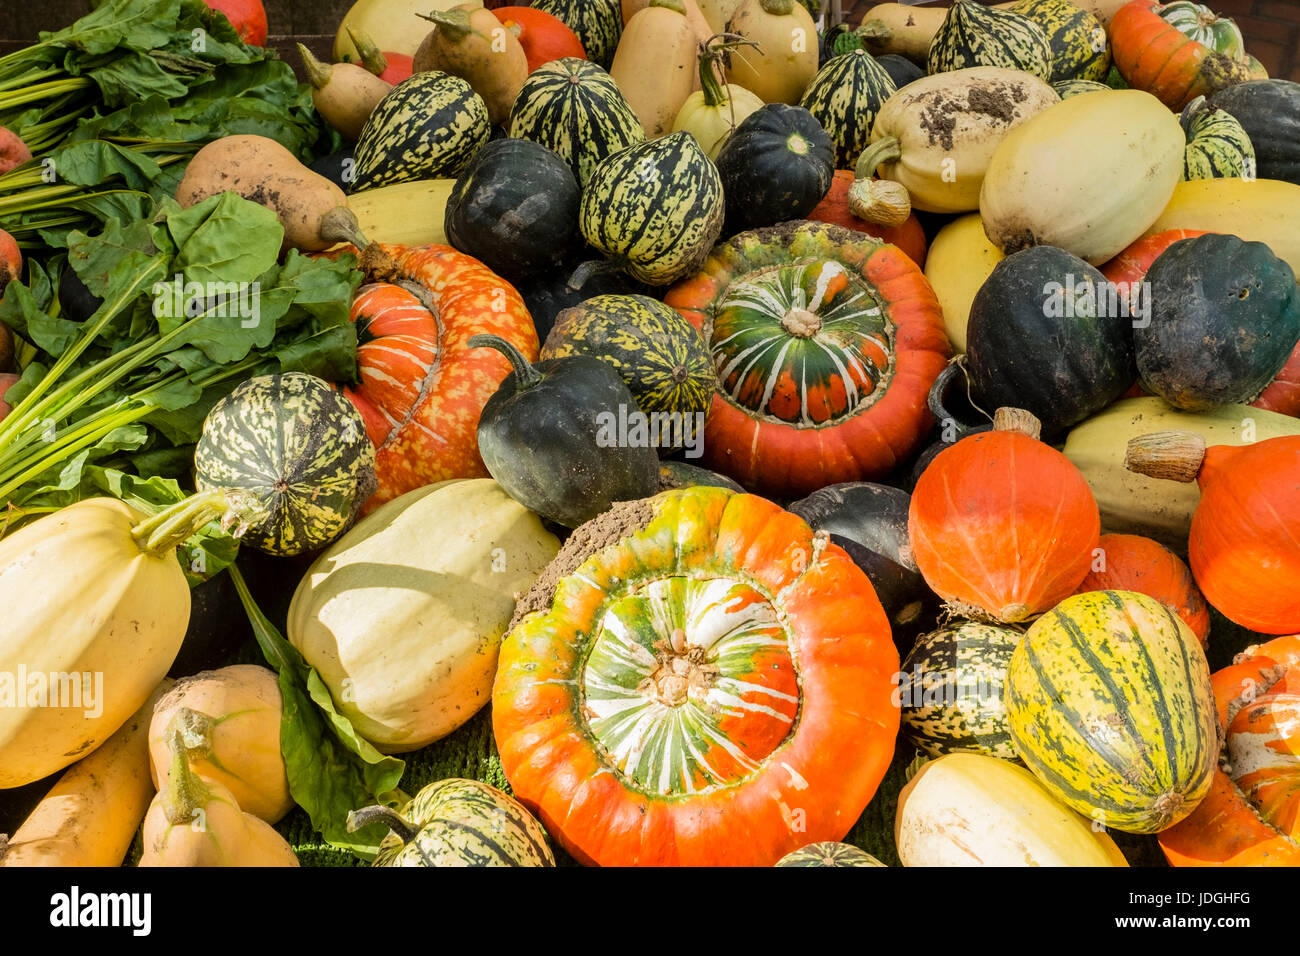 Colourful display of various vegetables, such as pumpkins and squashes - Stock Image